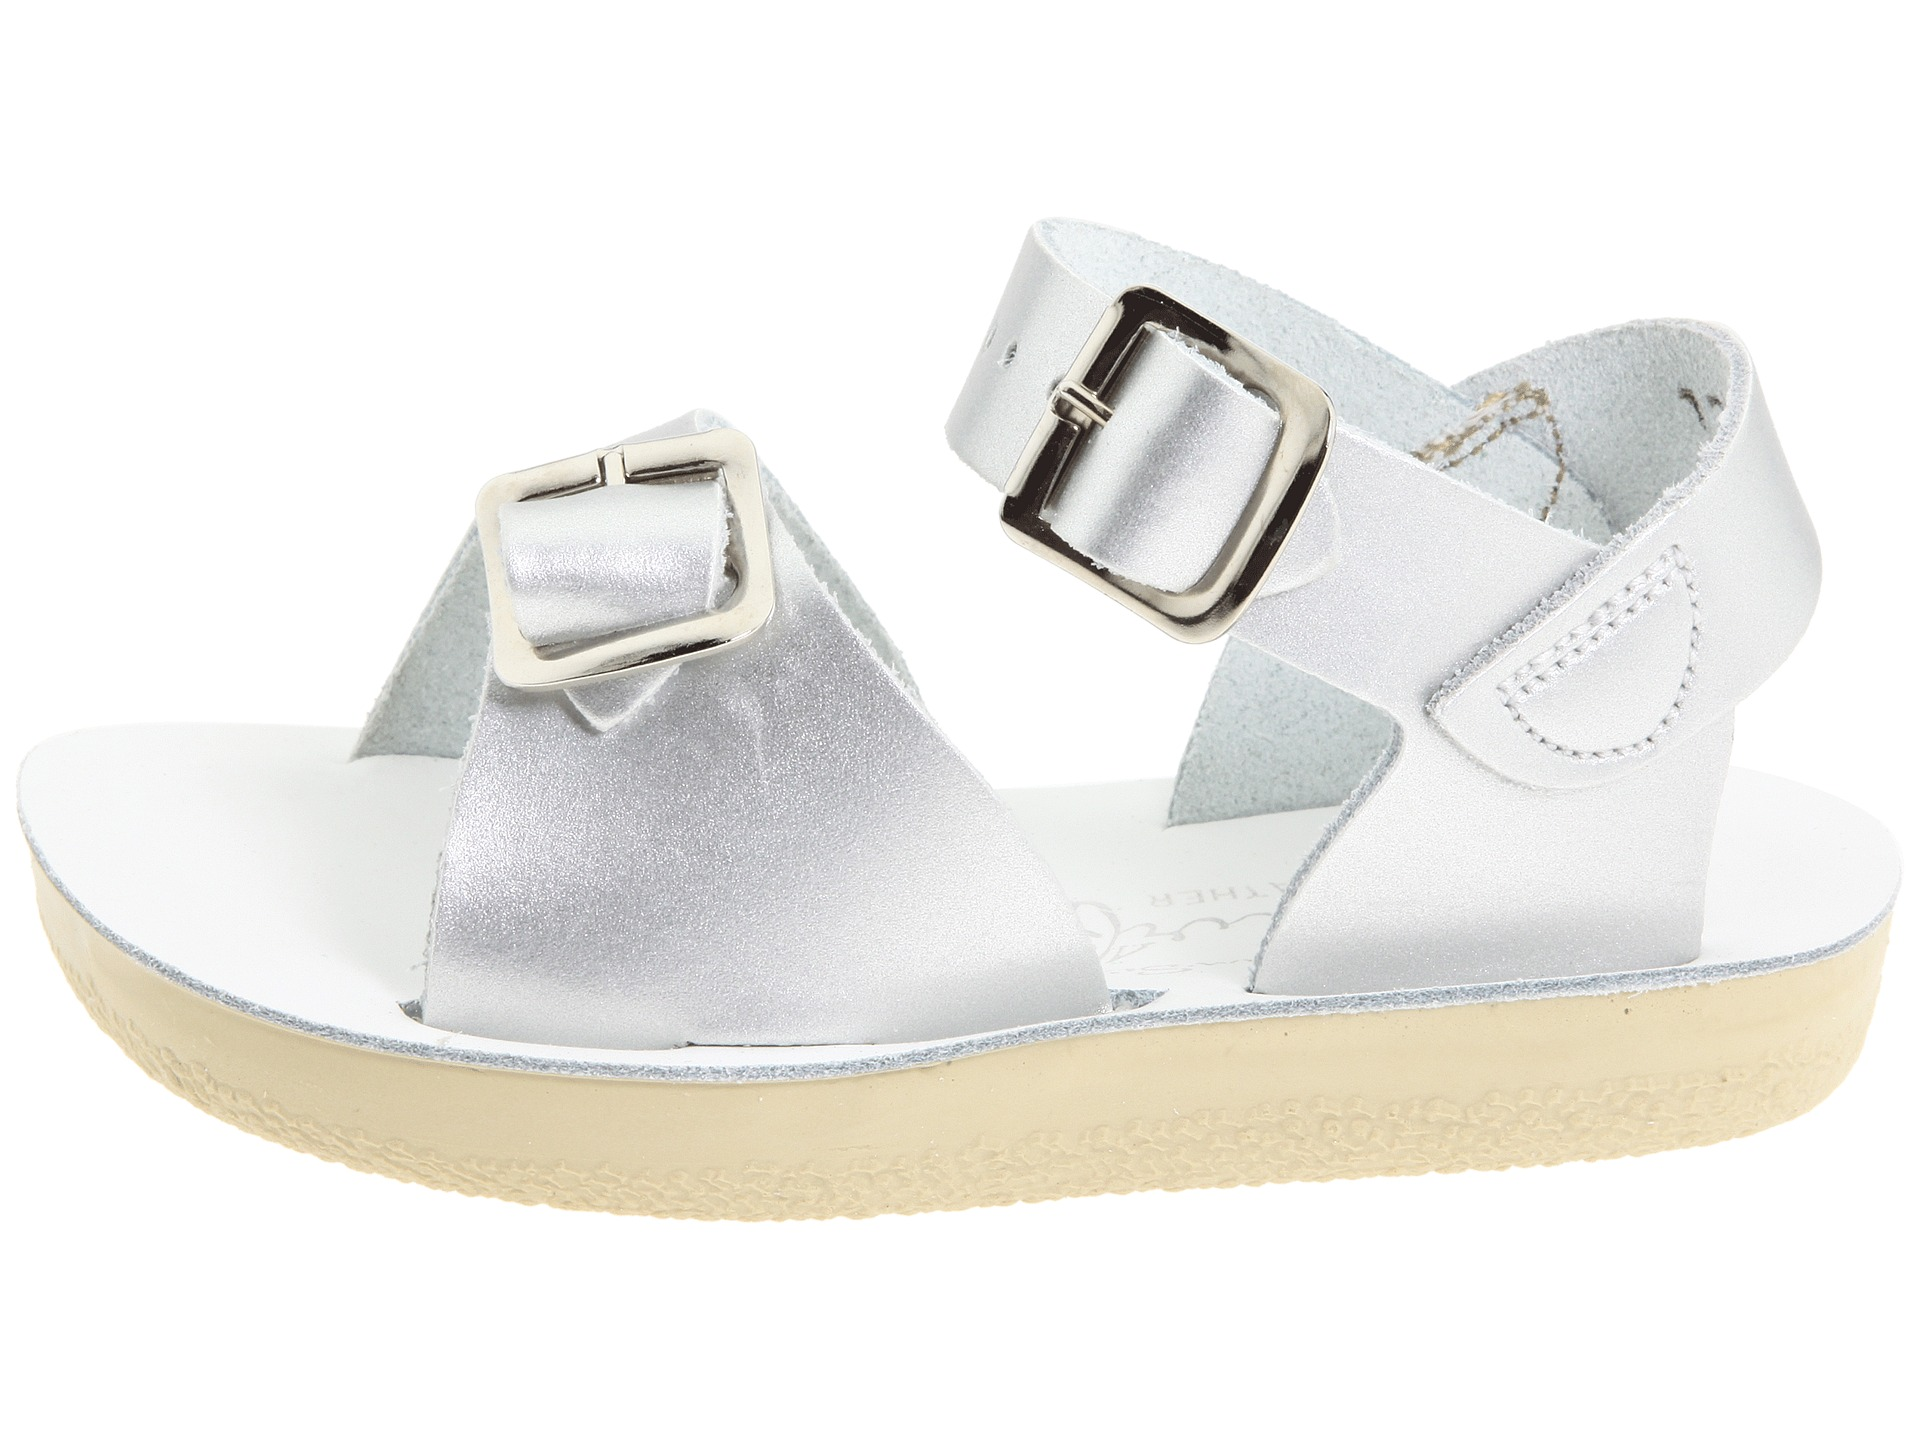 Sports Authority Womens Water Shoes